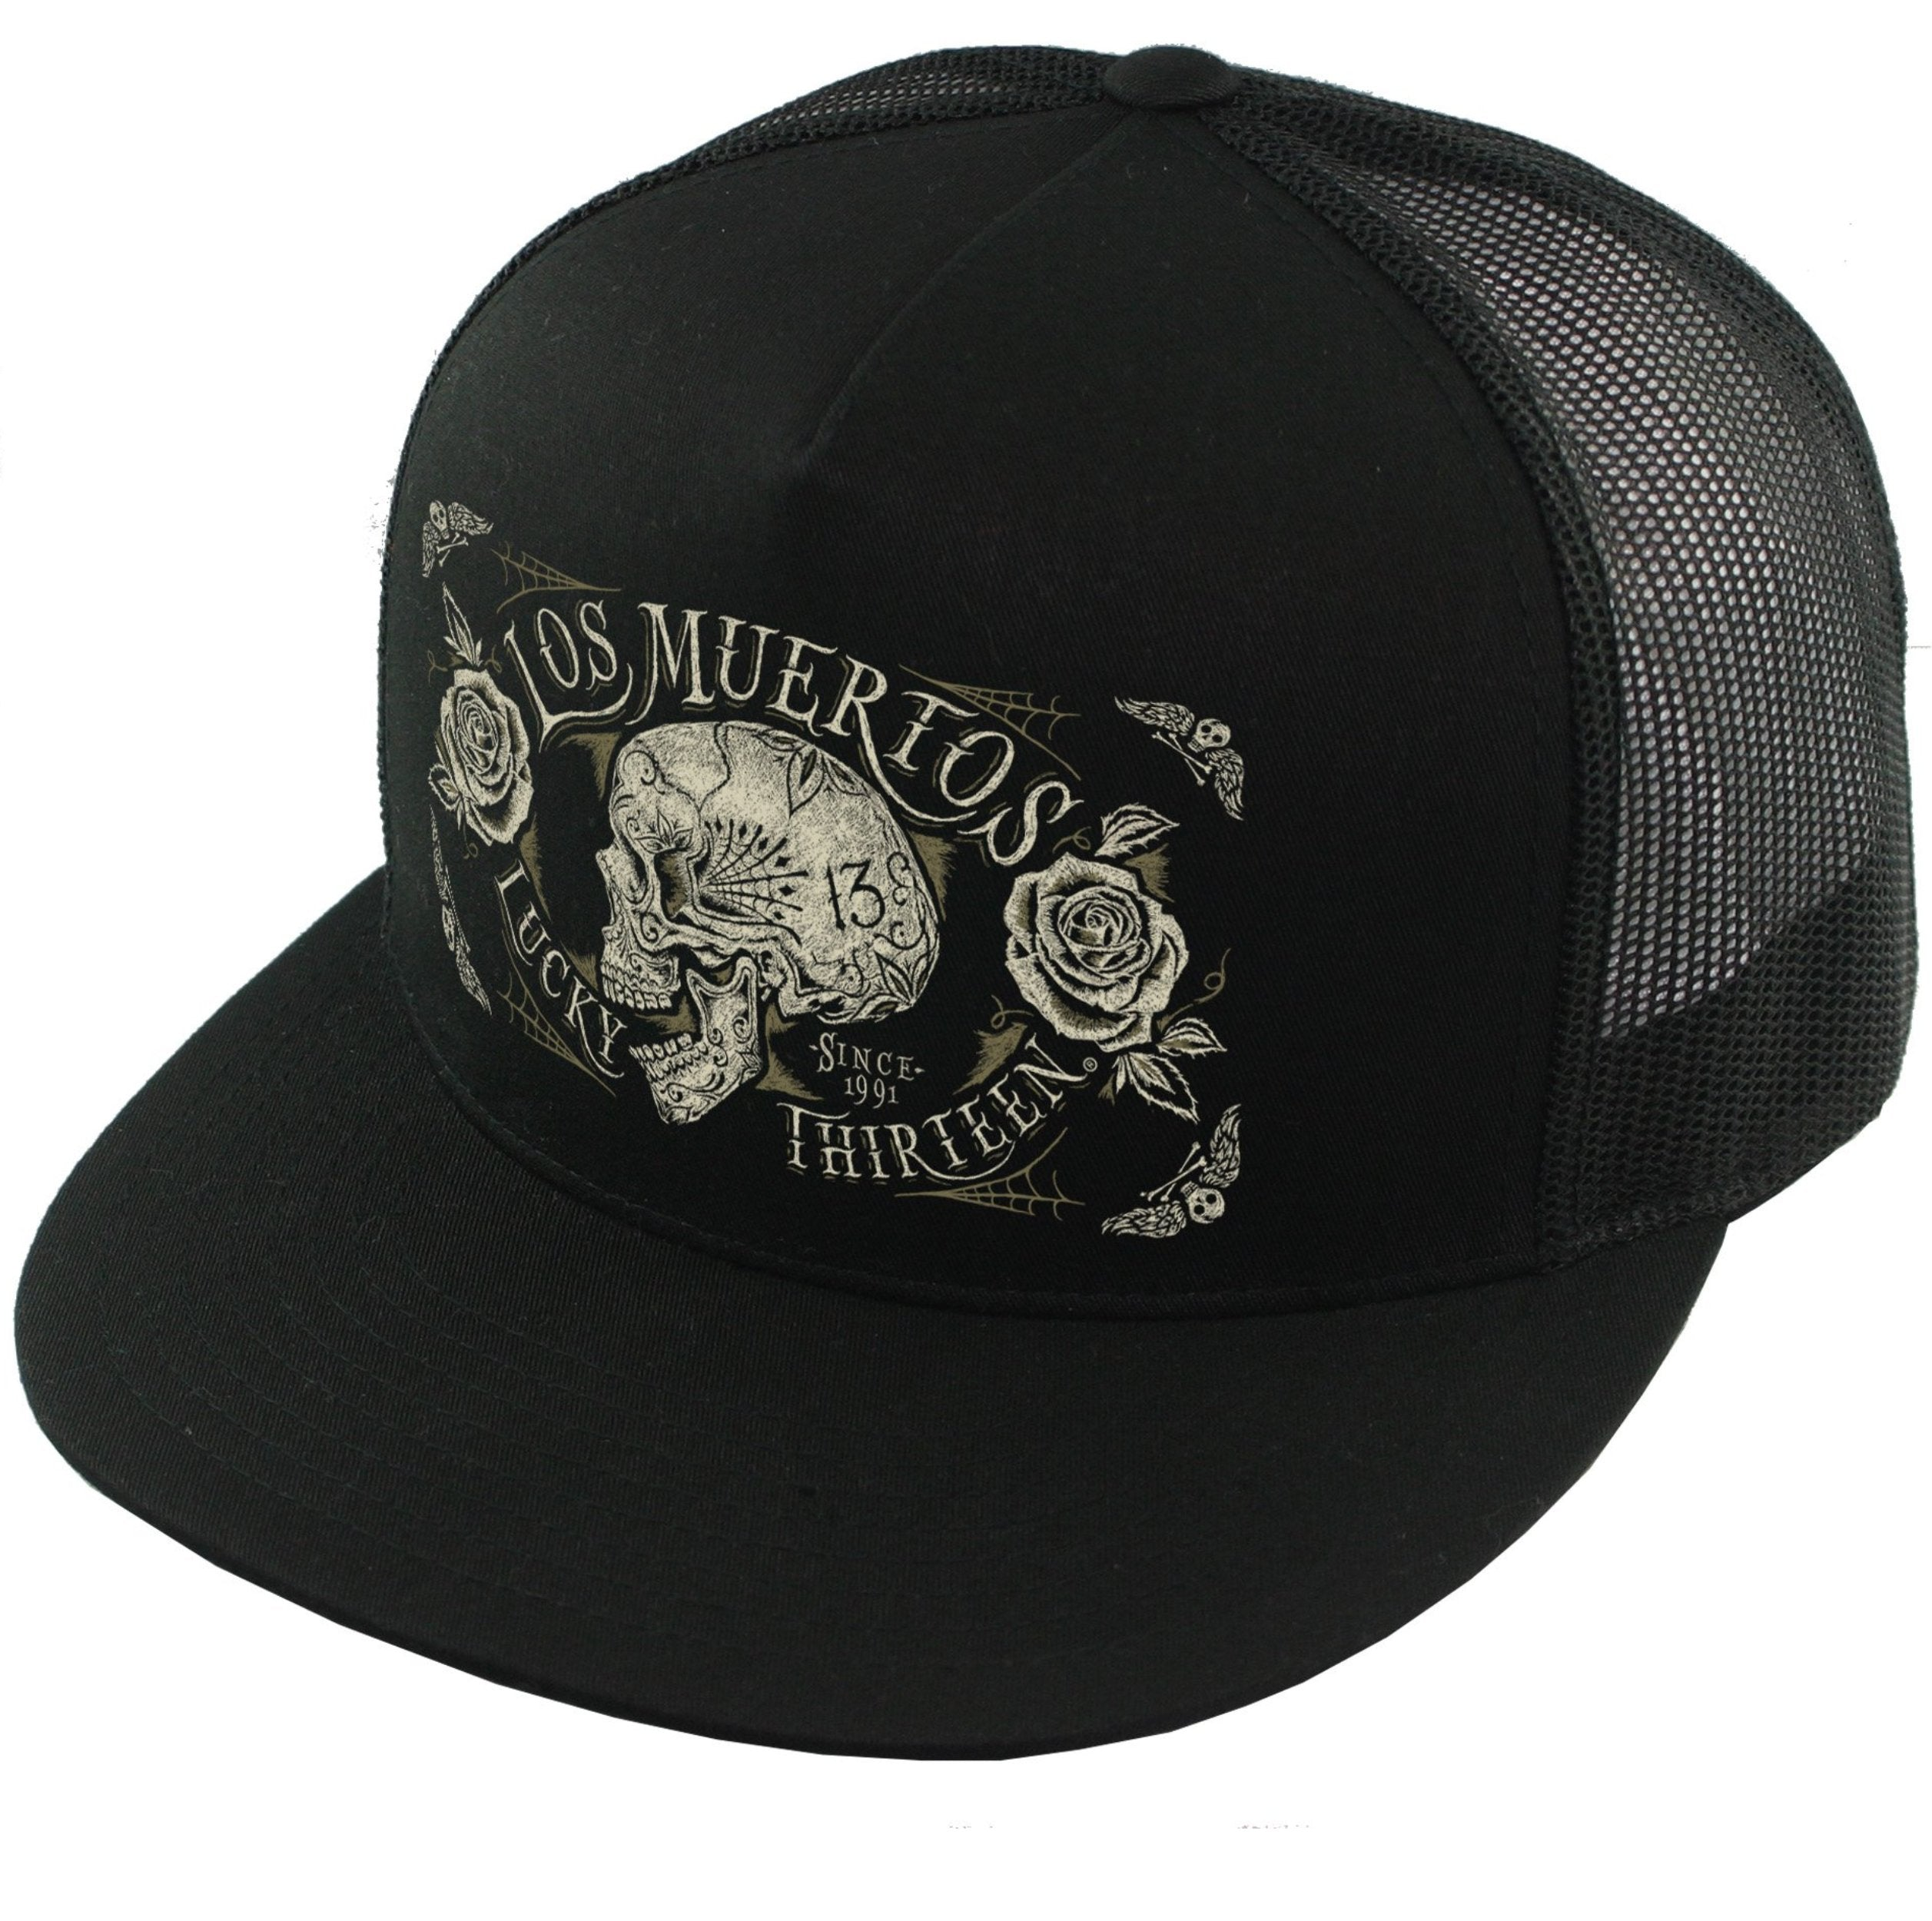 The DEAD SKULL Trucker Cap